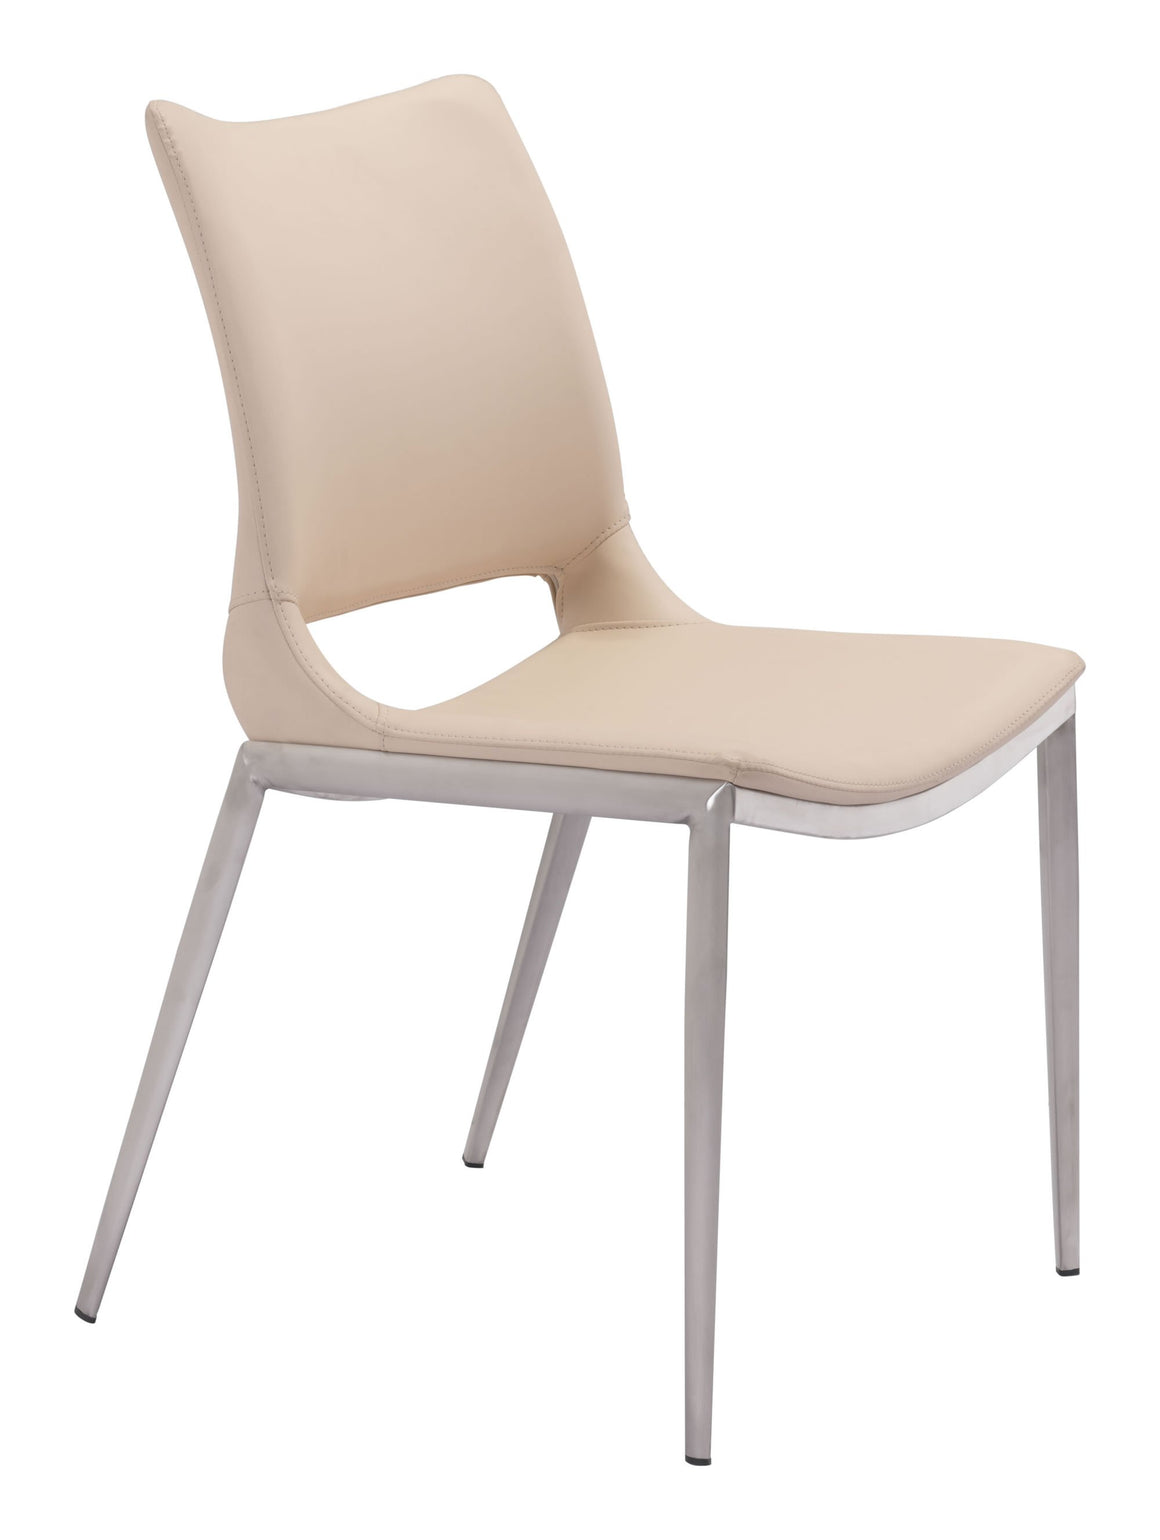 Ace Dining Chair Light Pink & Brushed Stainless Steel